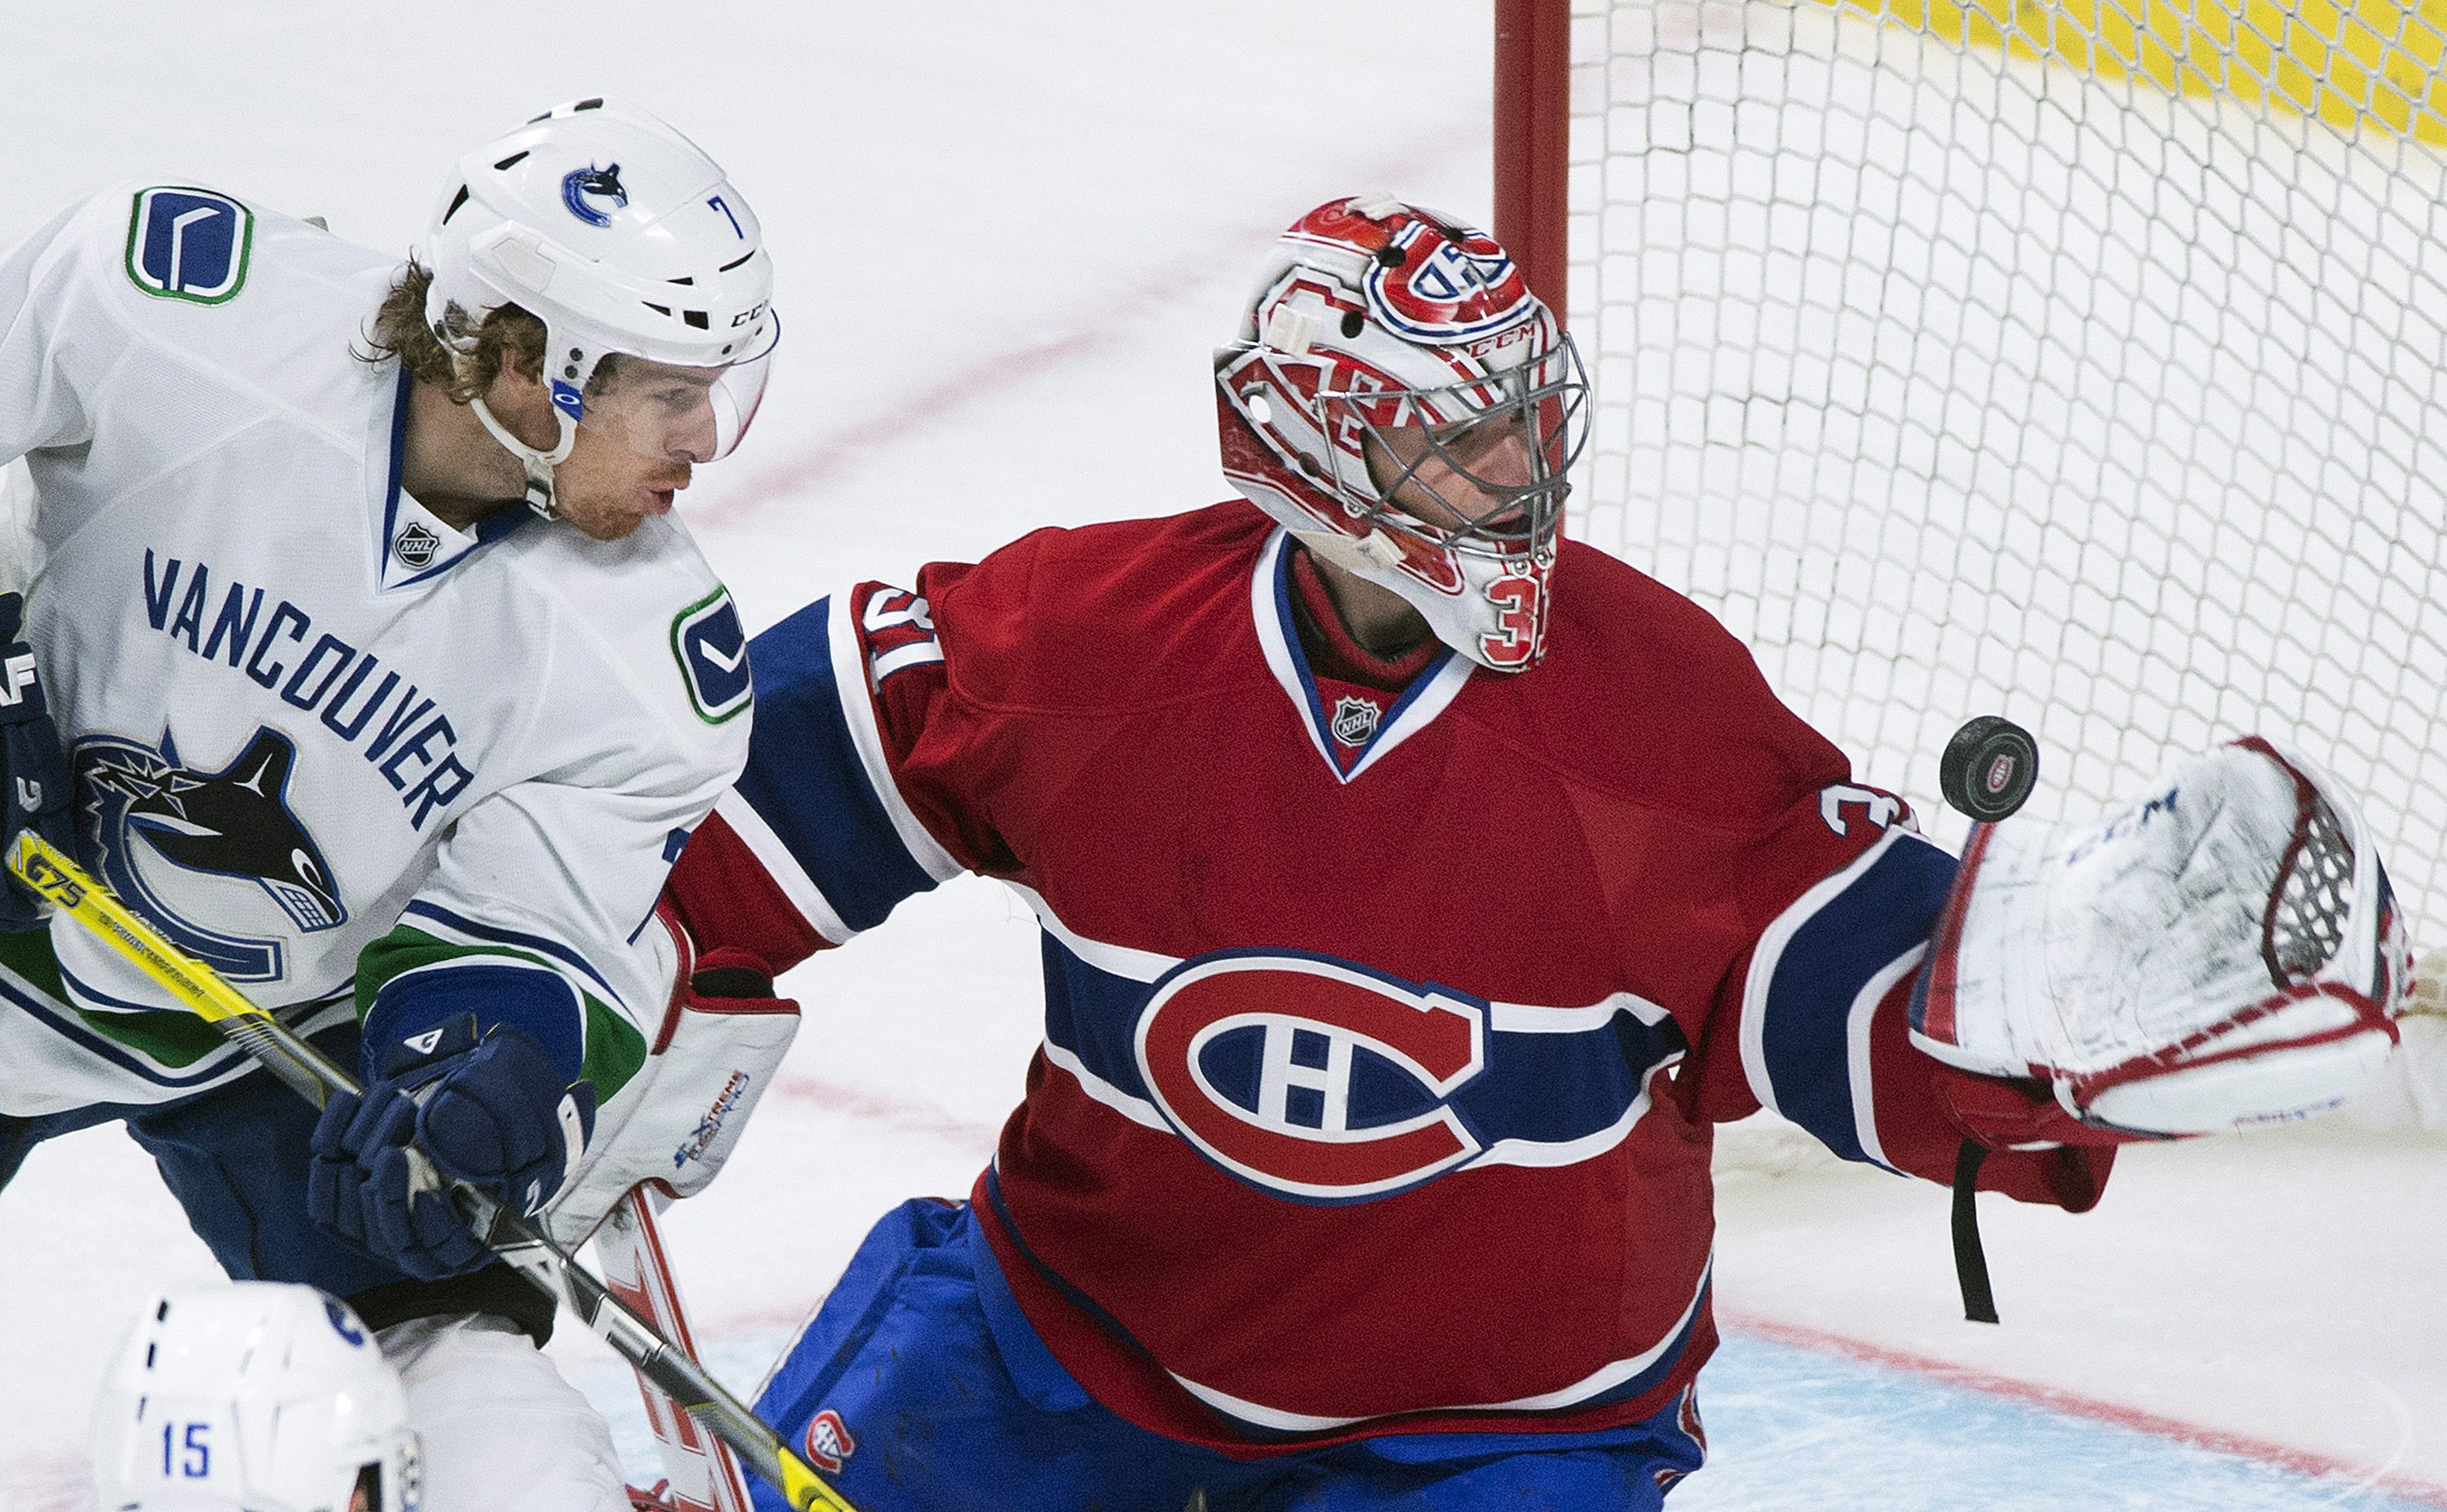 Montreal Canadiens goaltender Carey Price makes a save against Vancouver Canucks' David Booth during the third period of an NHL hockey game Thursday, Feb. 6, 2014, in Montreal. (AP Photo/The Canadian Press, Graham Hughes)